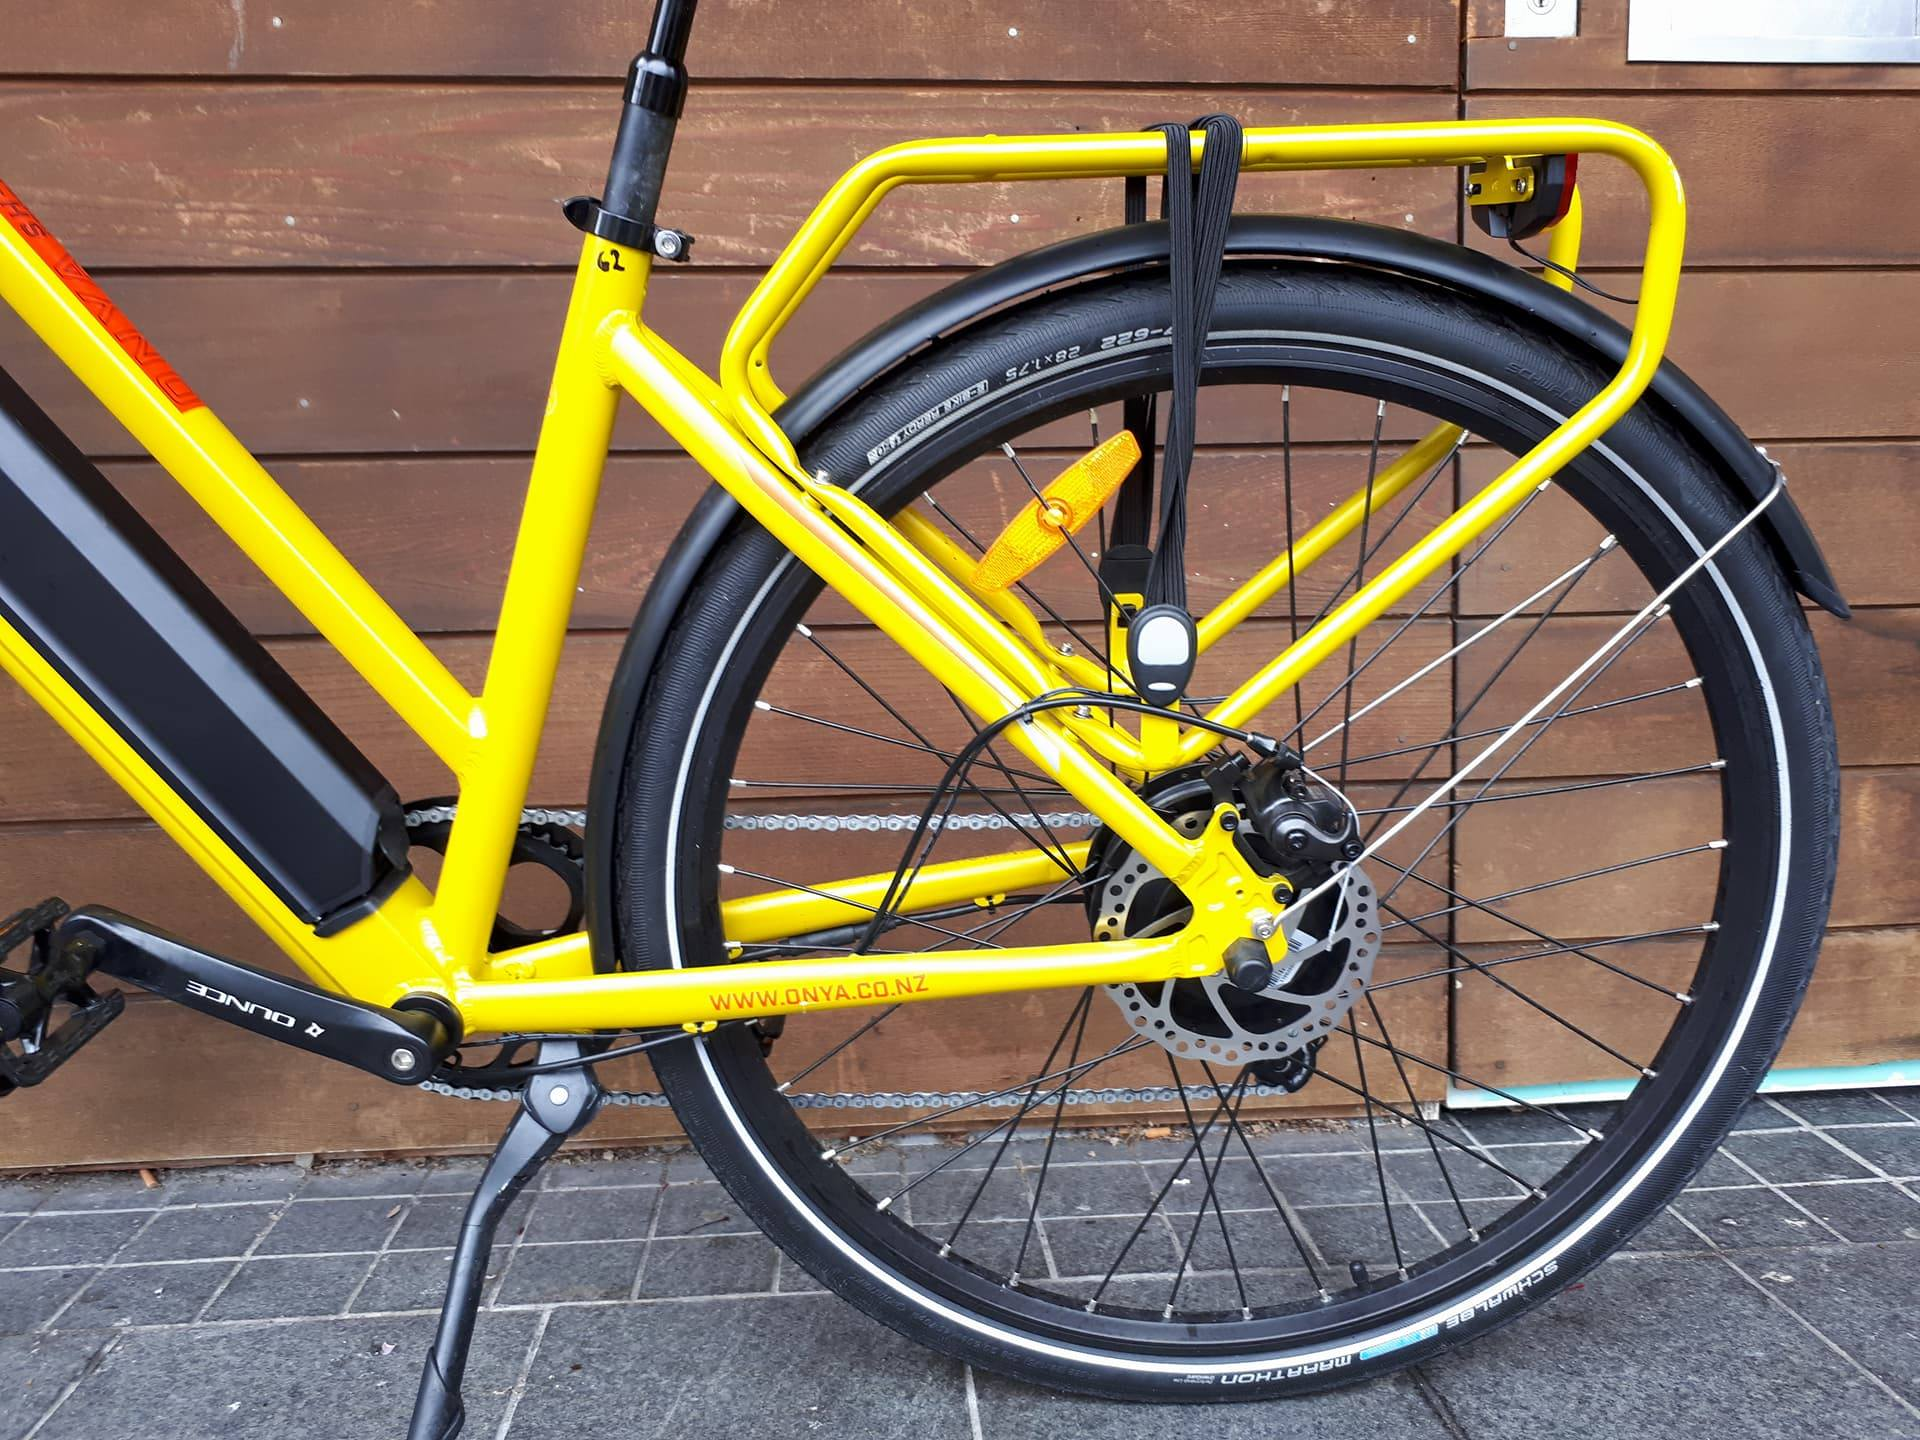 E bike ONYA SH1 Yellow